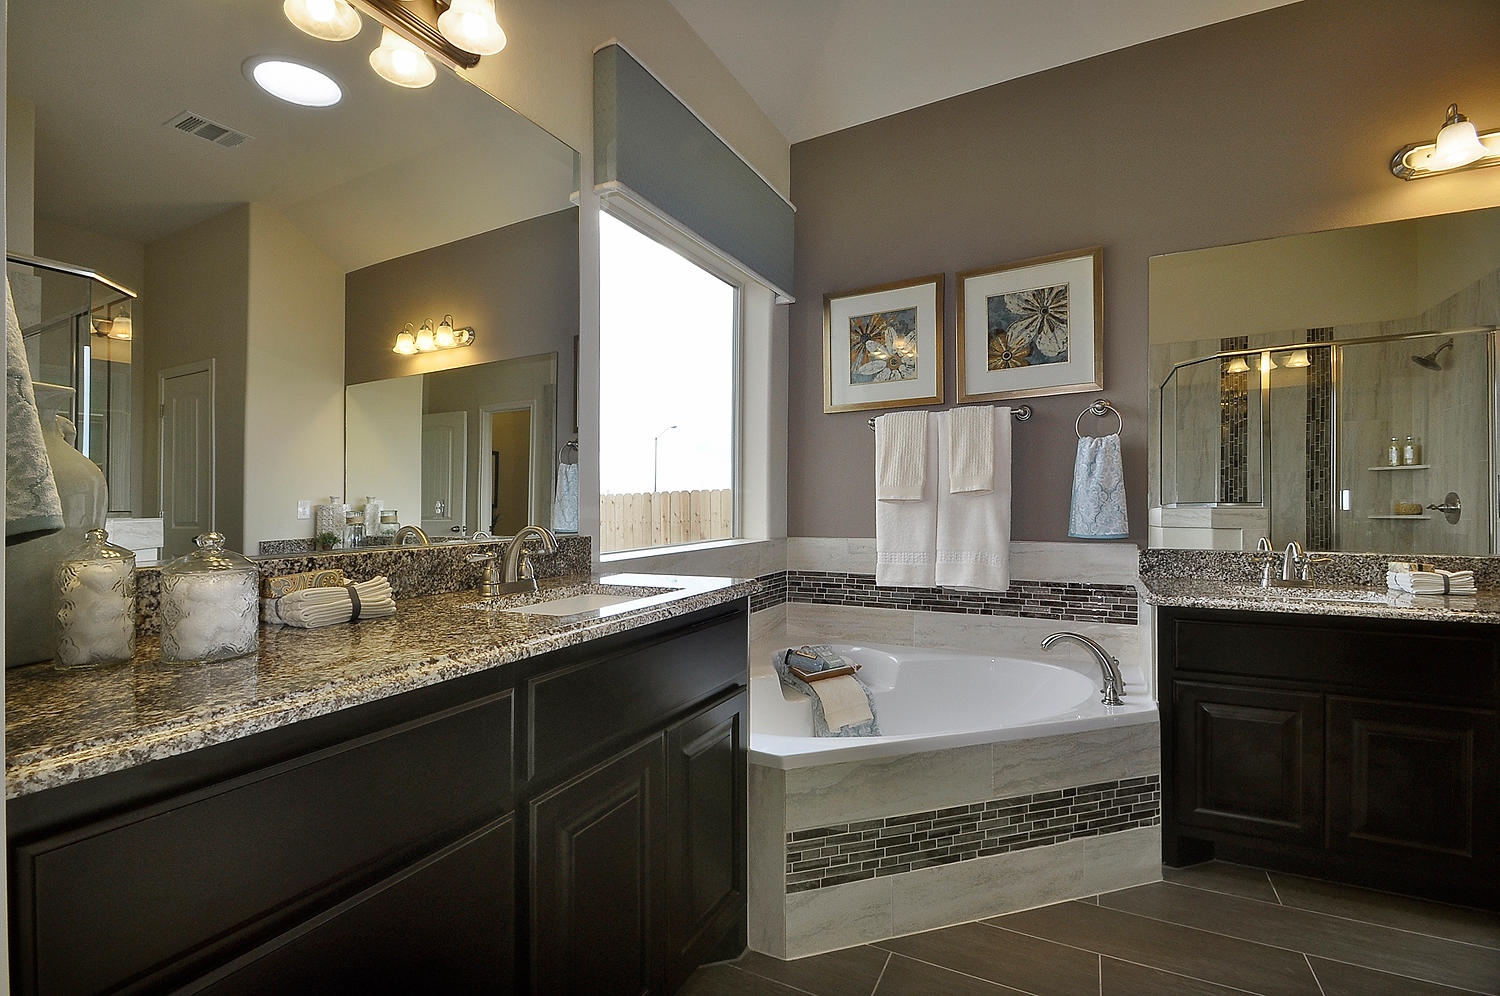 Espresso bathroom ideas espresso color cabinets home for Espresso bathroom ideas